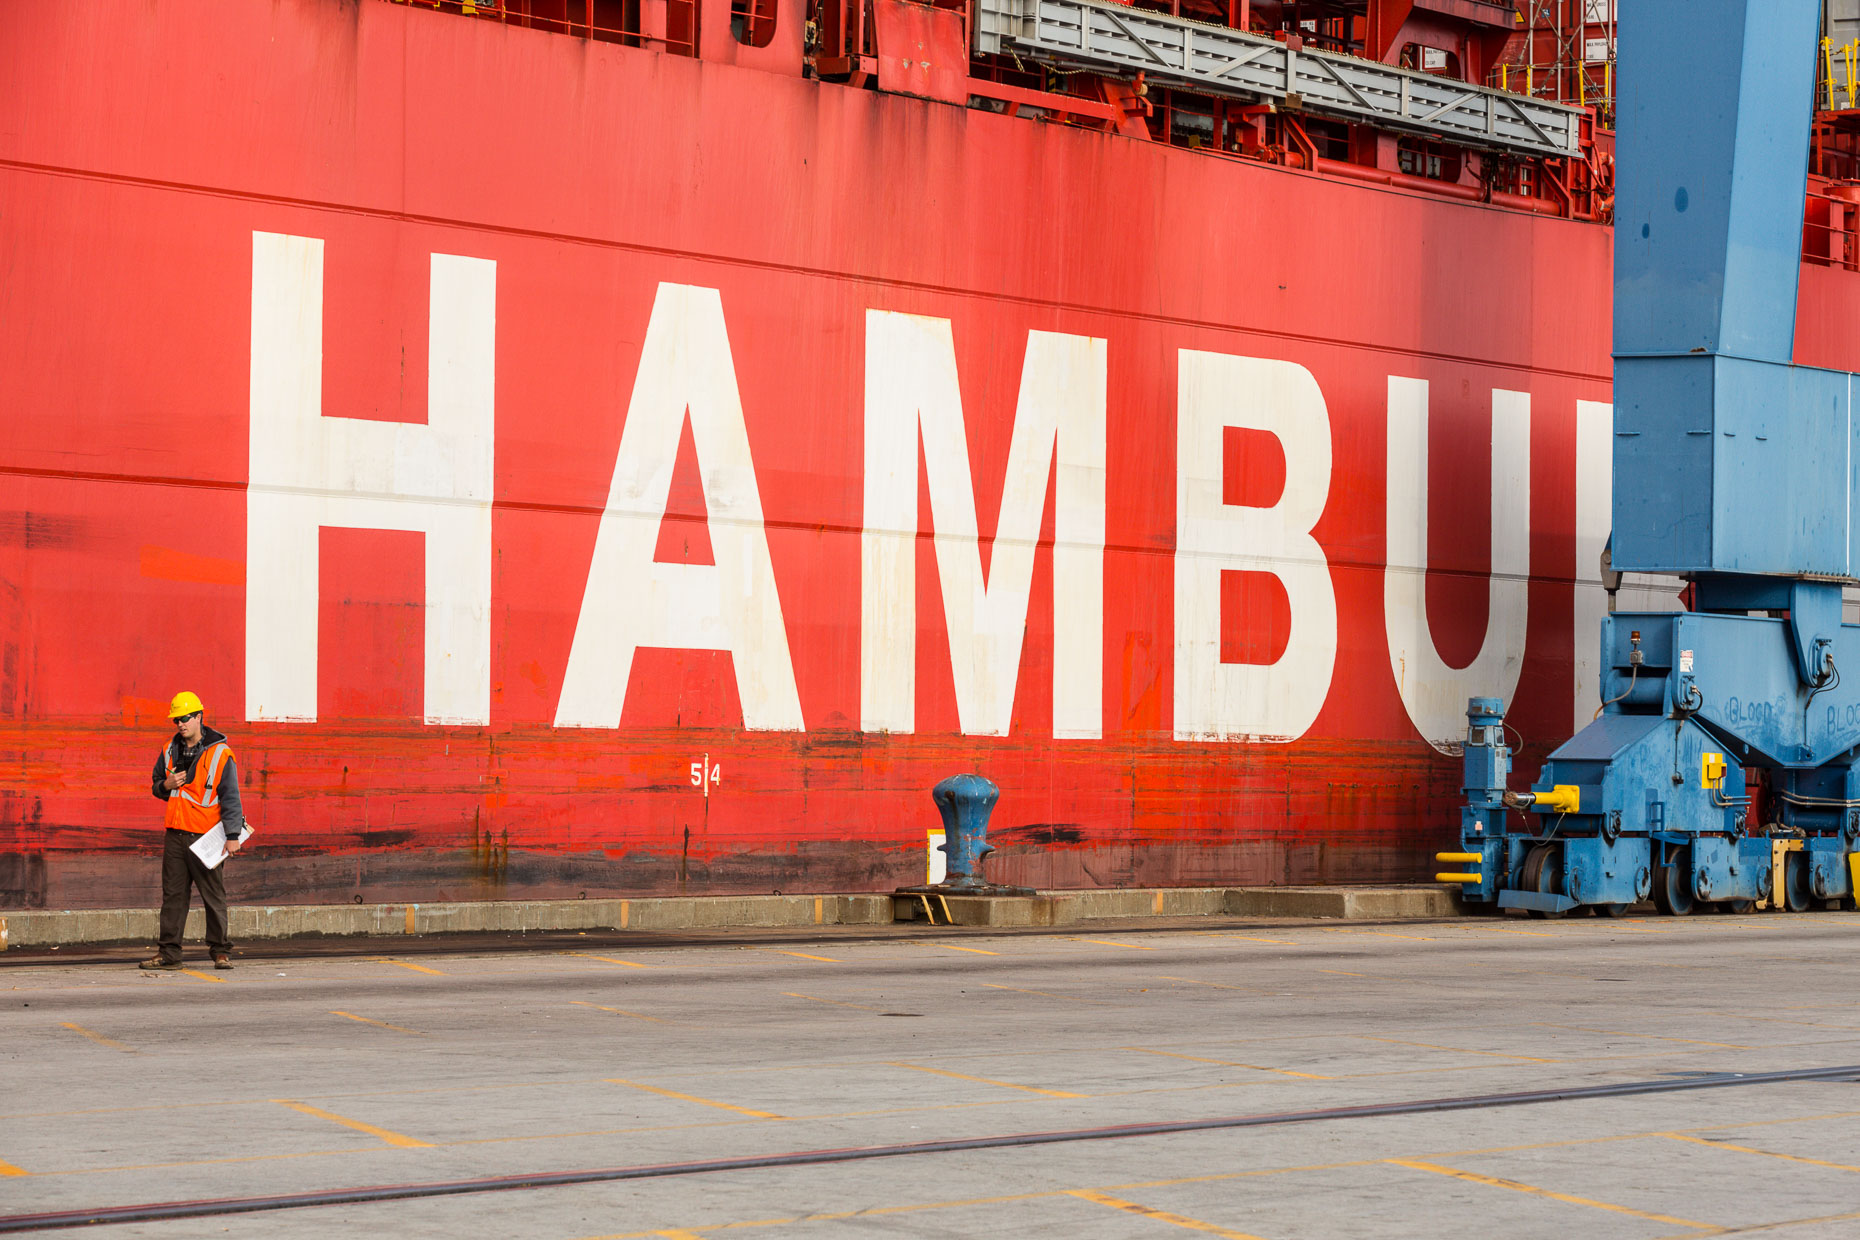 Shipyard working walking past red cargo ship with letters HAMBU in Mt. Pleasant, South Carolina by David Zaitz.